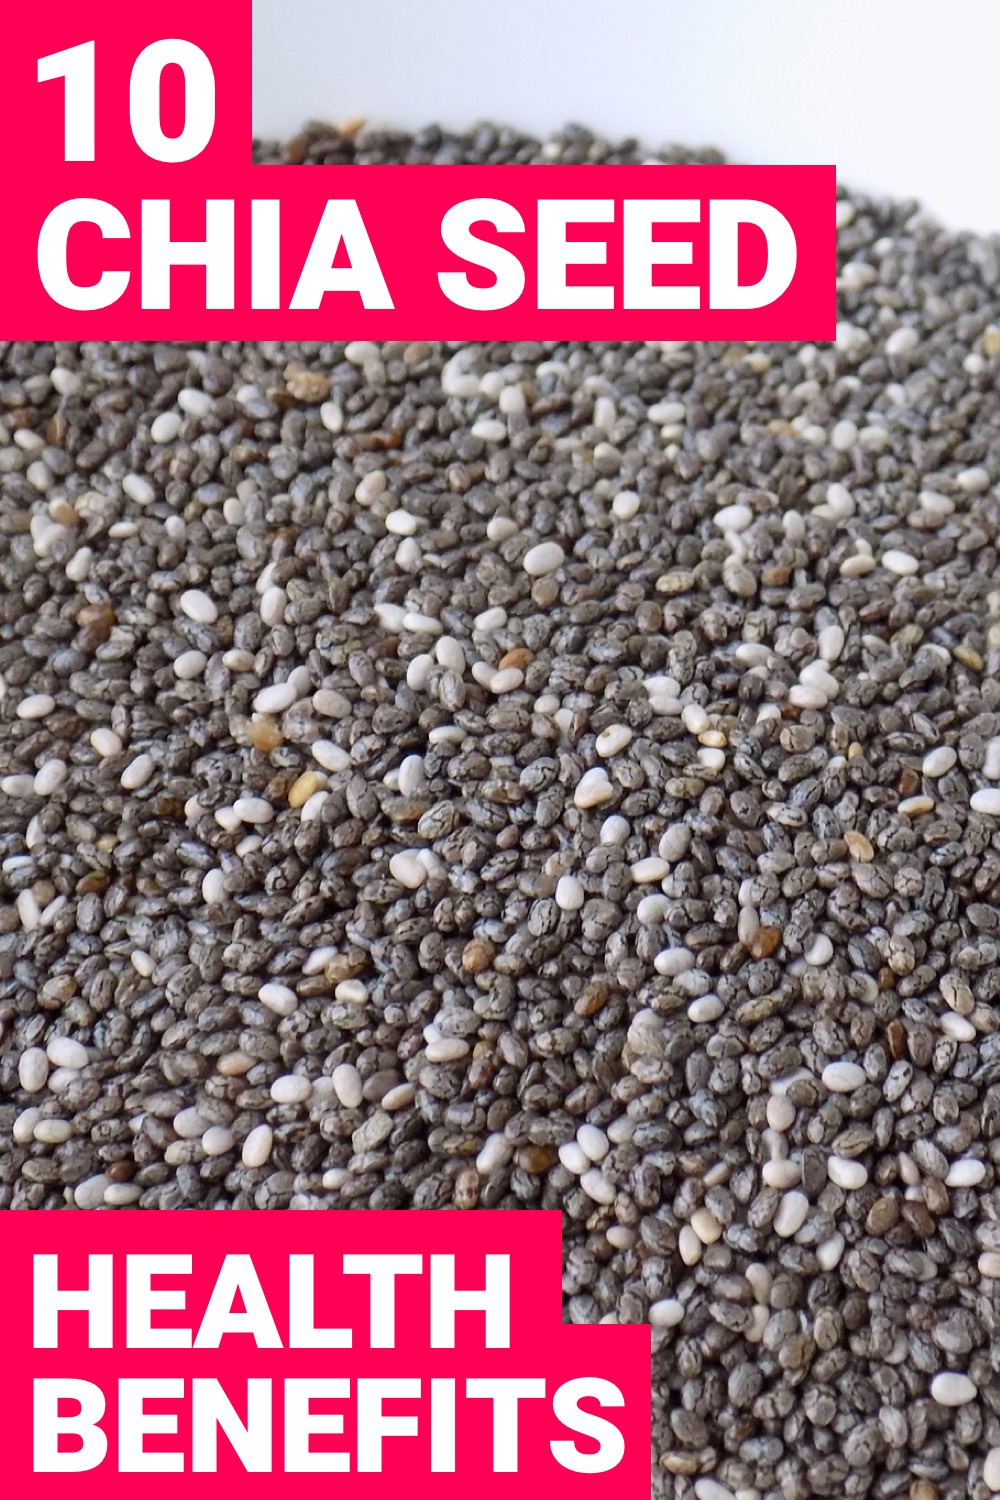 Chia seeds are more than just tiny seeds. Chia seed nutrition can greatly help you. Here are 10 health benefits that you need to know about.